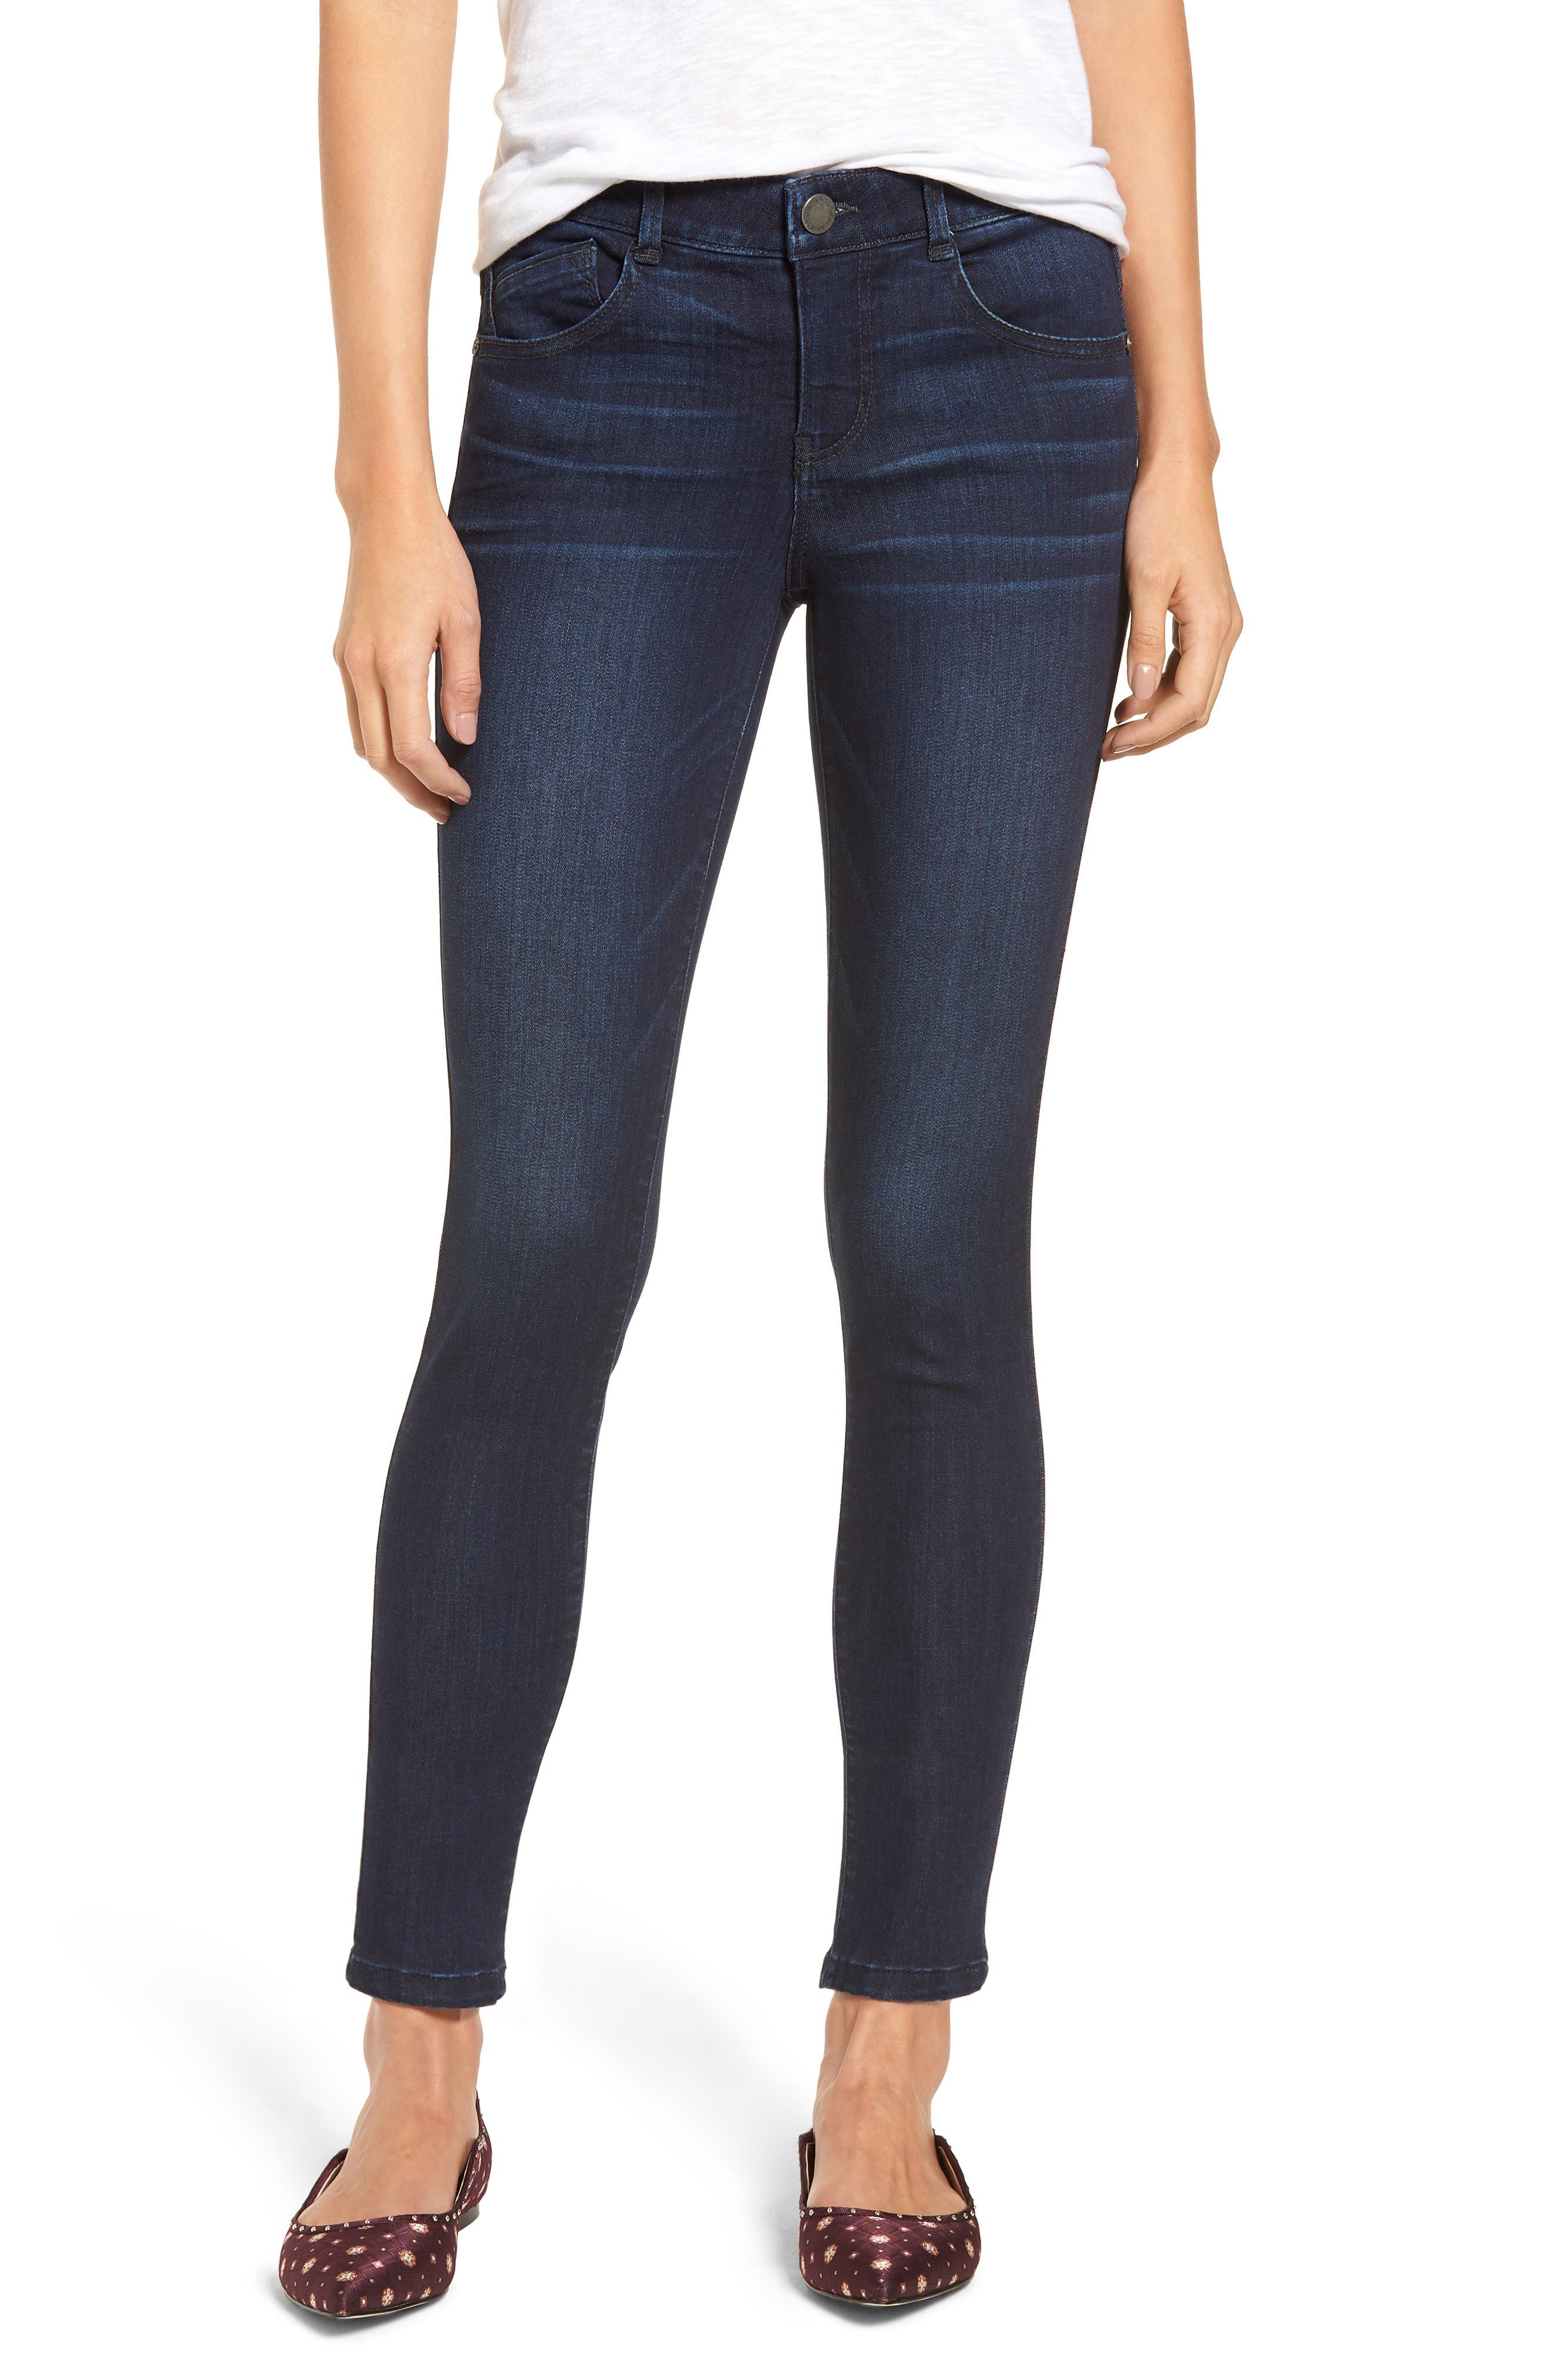 Ab-solution Skinny Jeans,                         Main,                         color, 402